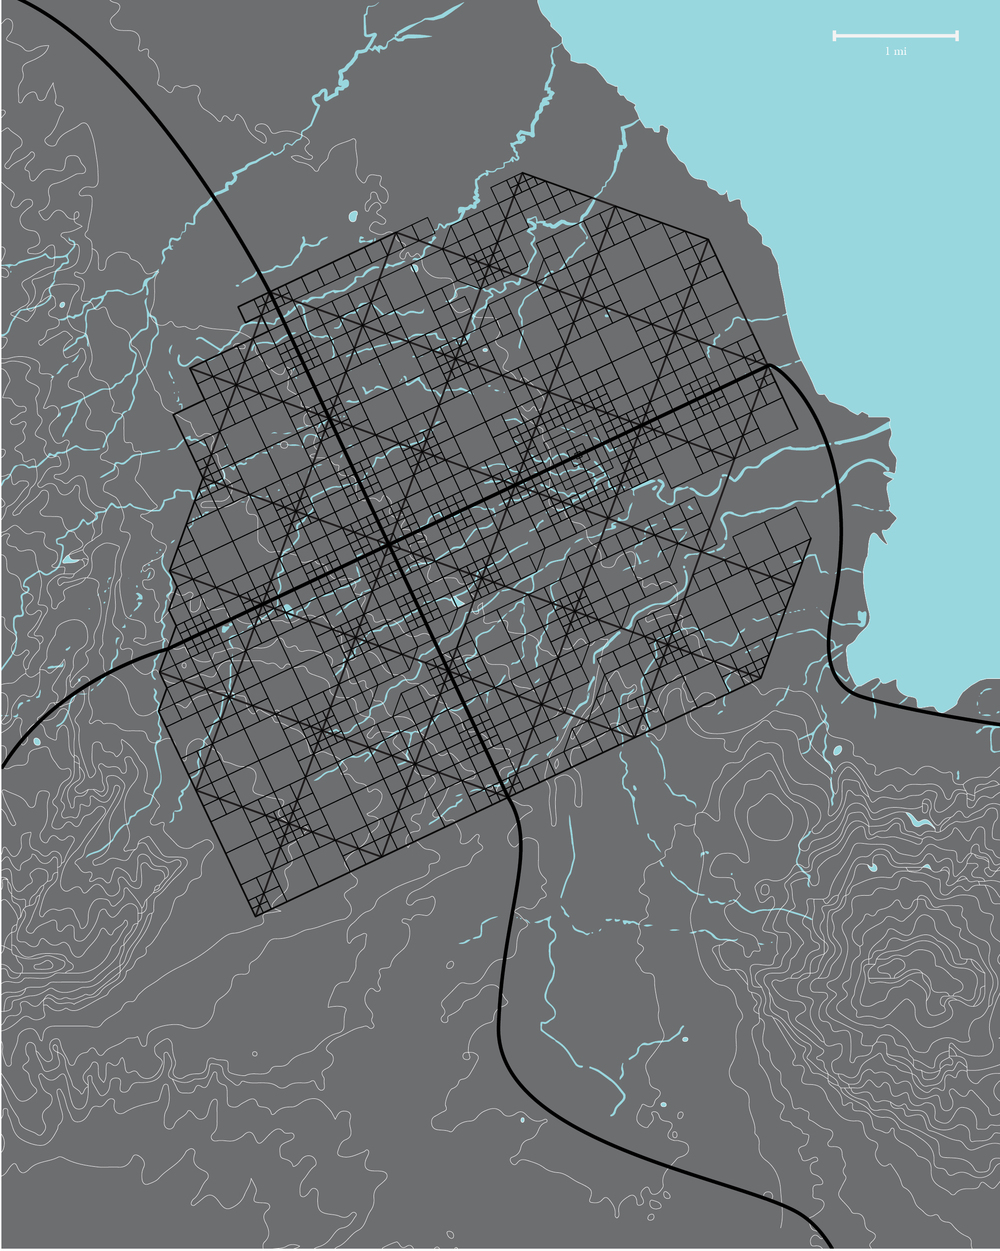 City Grid Site Adaptation